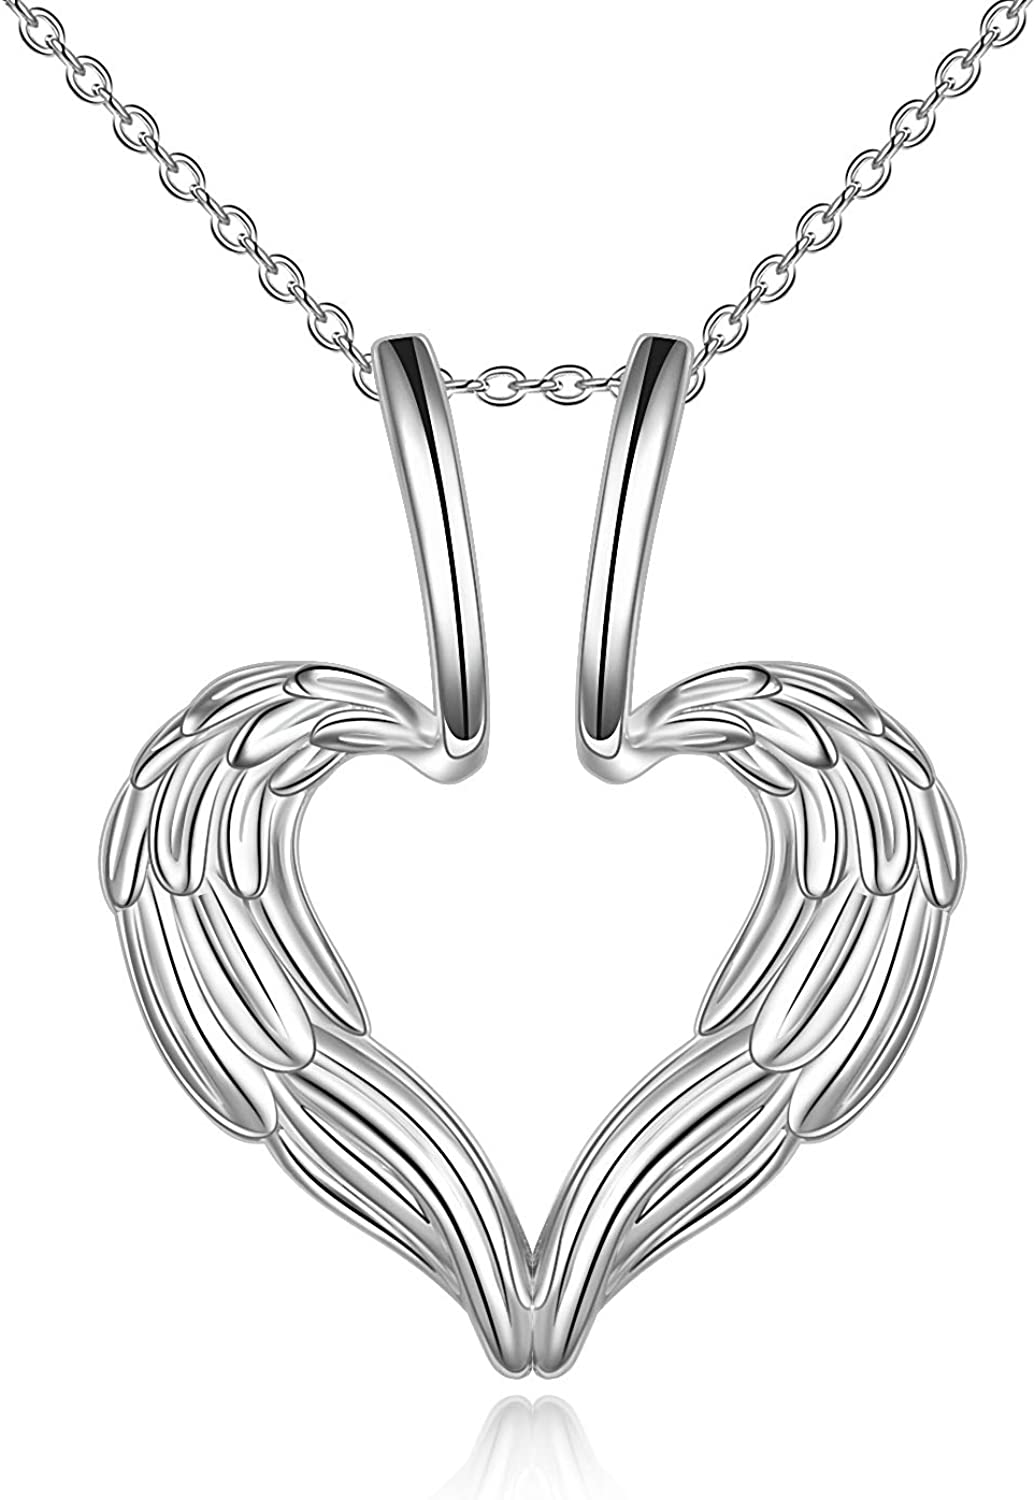 Mens Sterling Silver Ring Holder Necklace CHOOSE Ring Holder Size and chain Thickness Sterling Silver Ring Holder or Silver Plated Av.